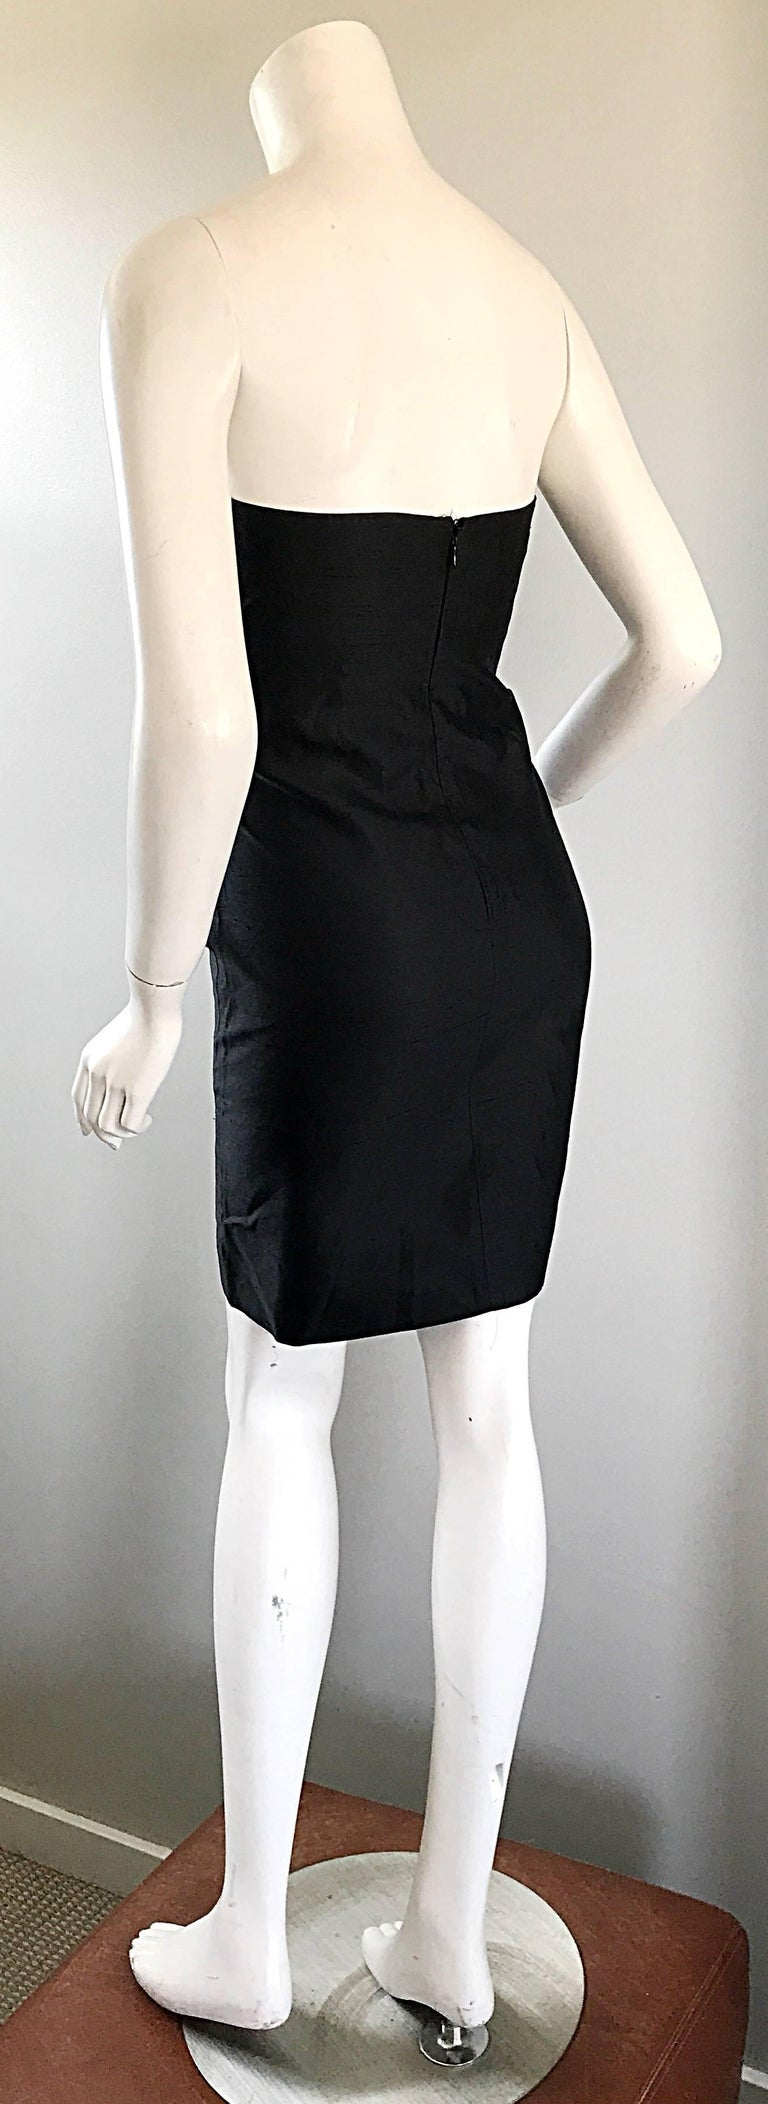 1990s Michael Kors Collection Size 2 Black Silk Shantung Strapless Vintage Dress 7